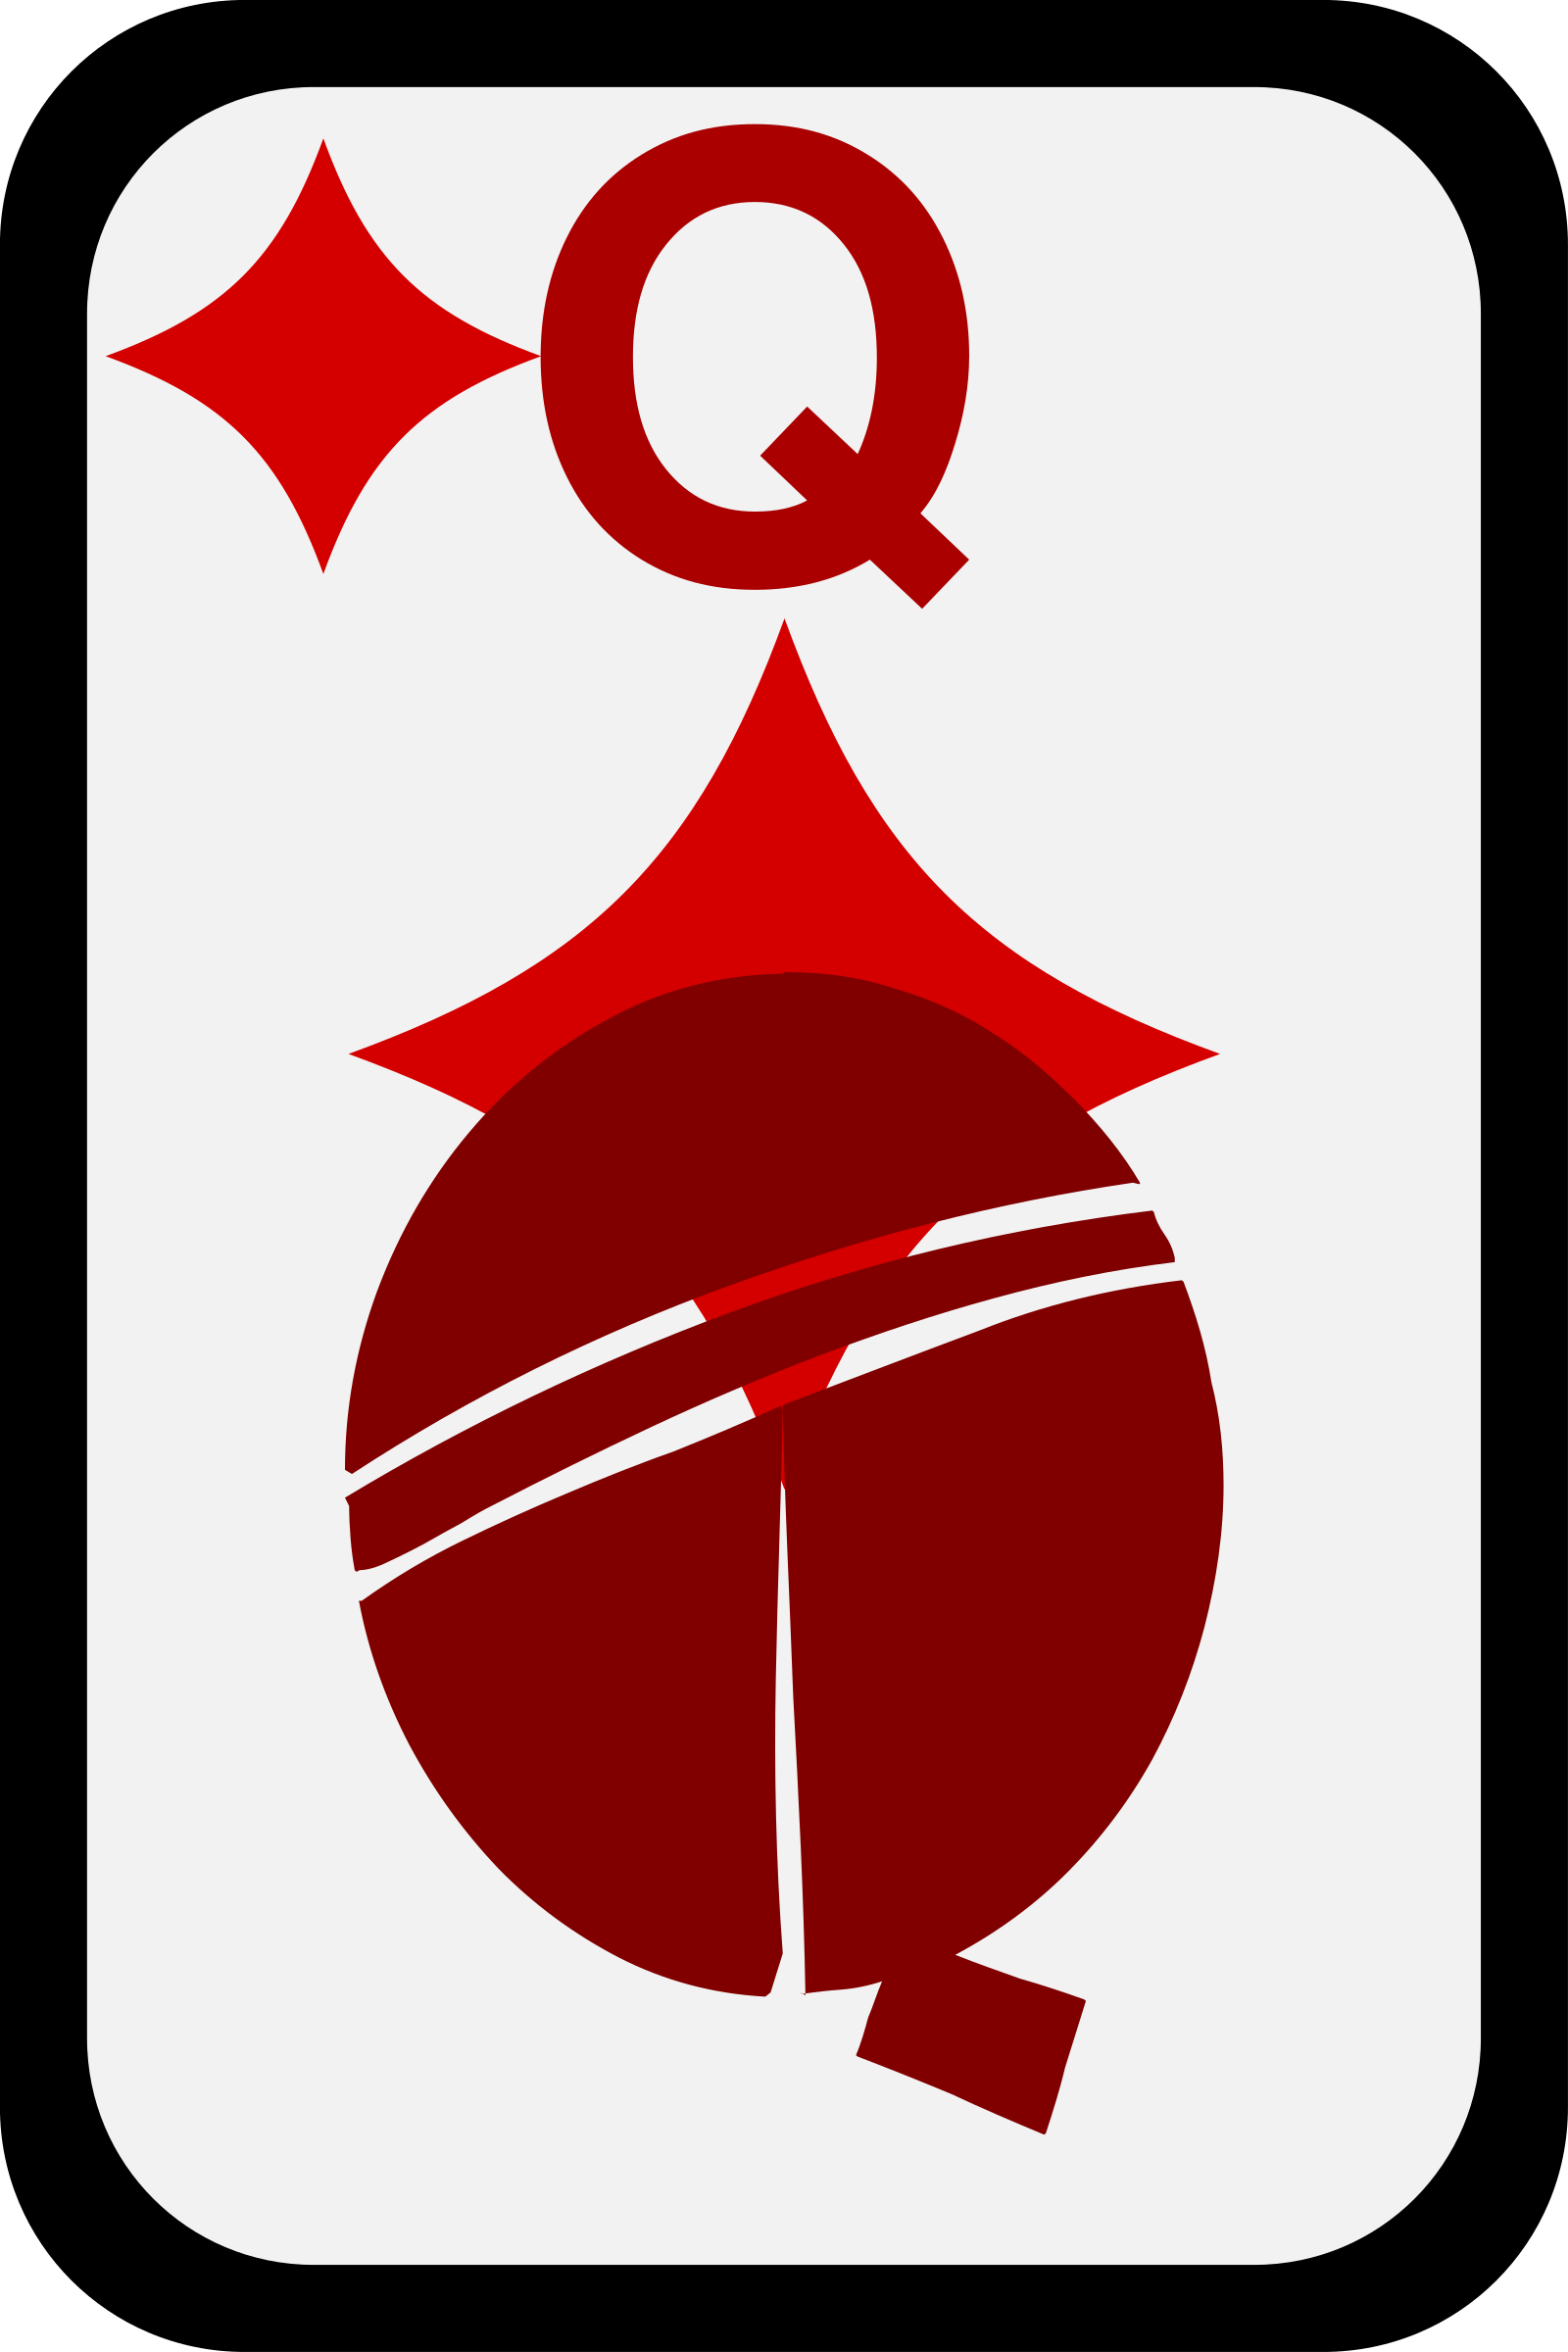 Queen of Diamonds by momoko